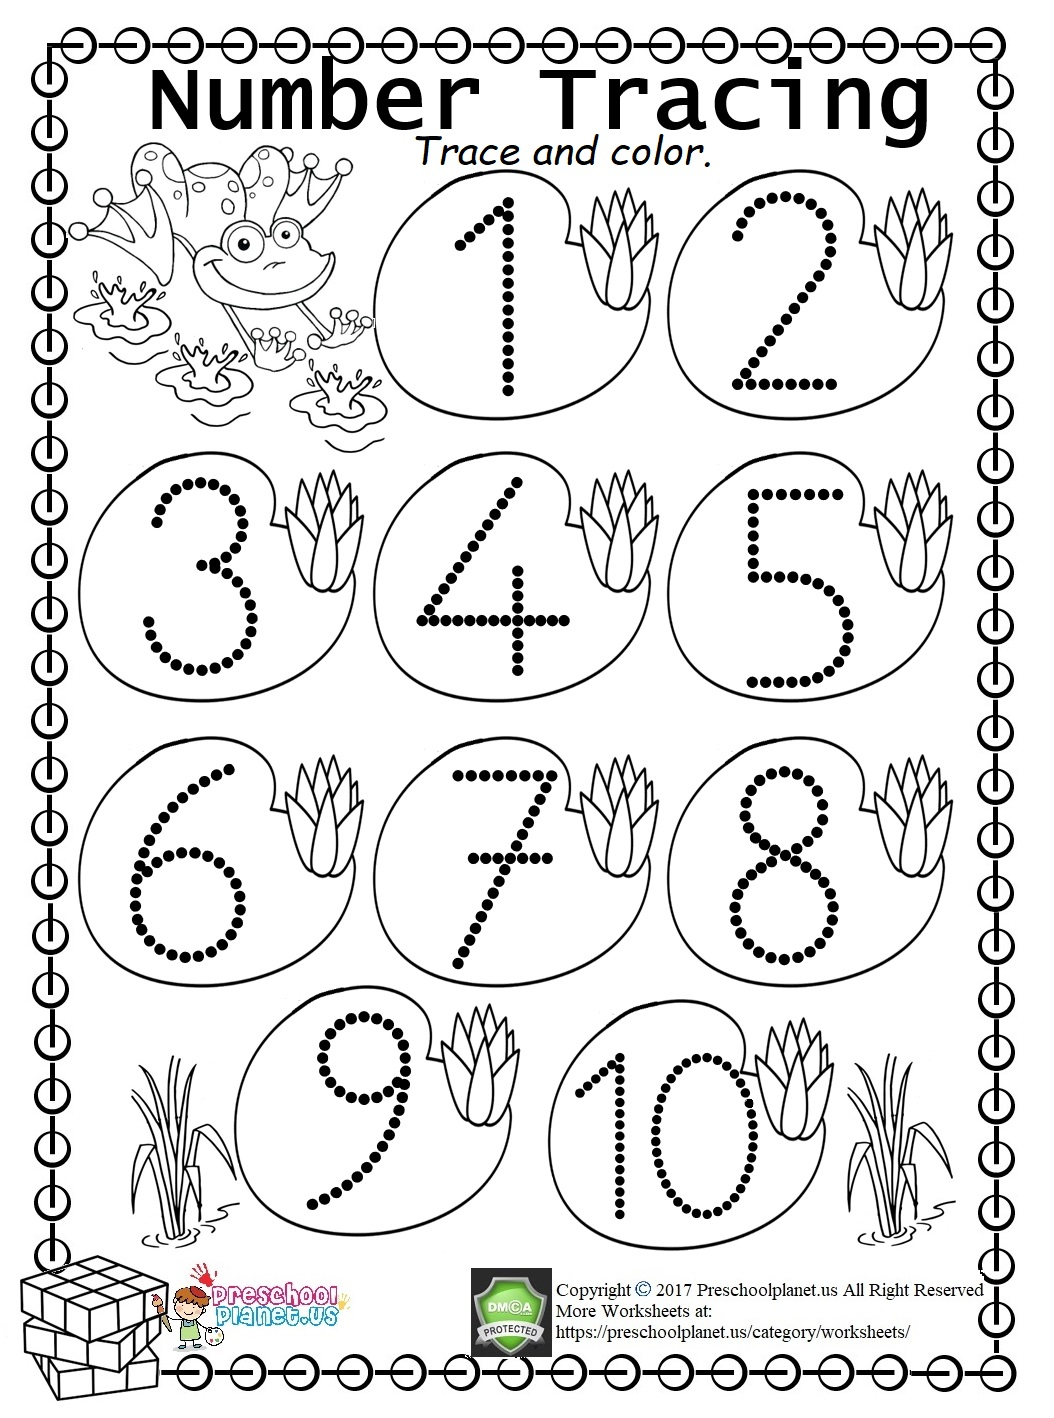 Easy Number Trace Worksheet (1-10)